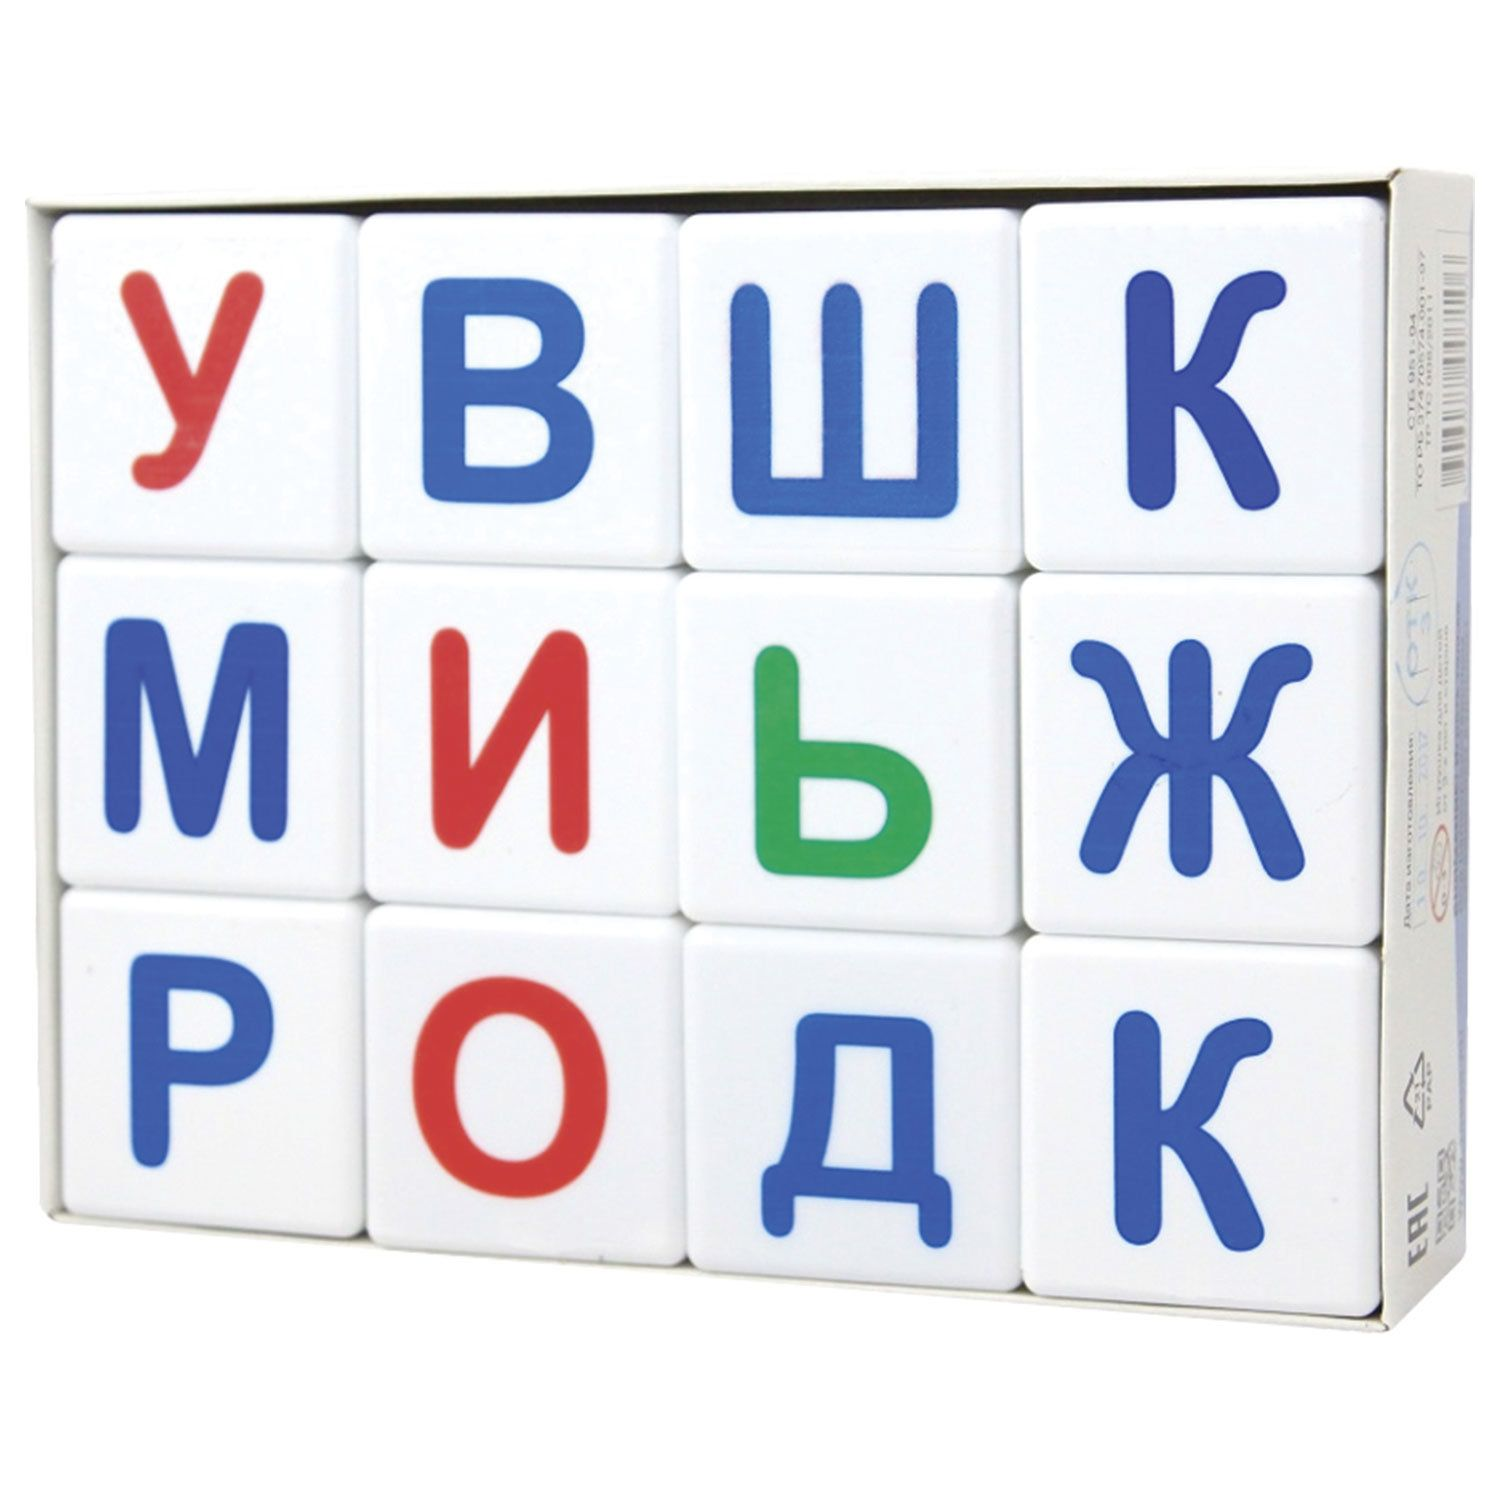 """Plastic Cubes Learn playing """"ABC"""" 12 pieces, 4 x 4 x4 cm, colored letters on white cubes, 10 KINGDOM"""